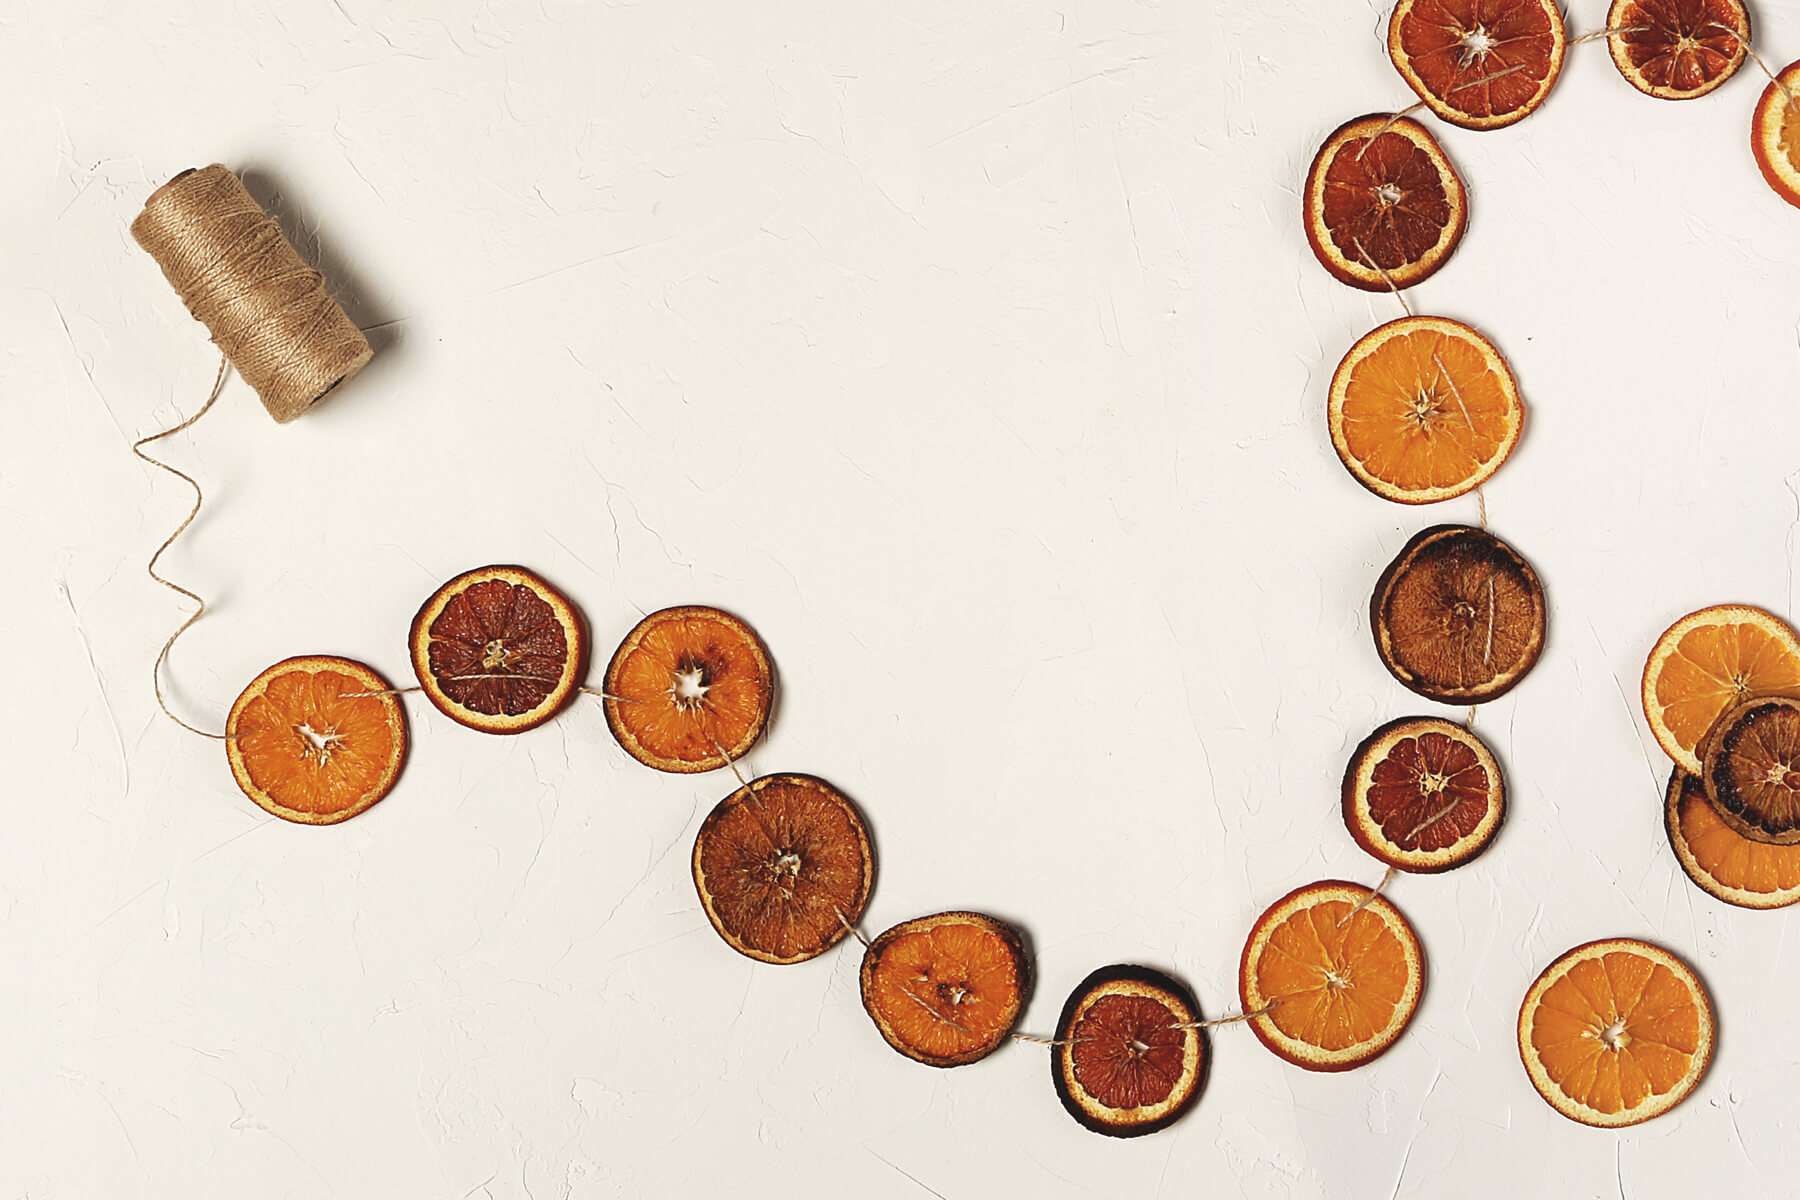 A citrus garland made of oranges and blood oranges.